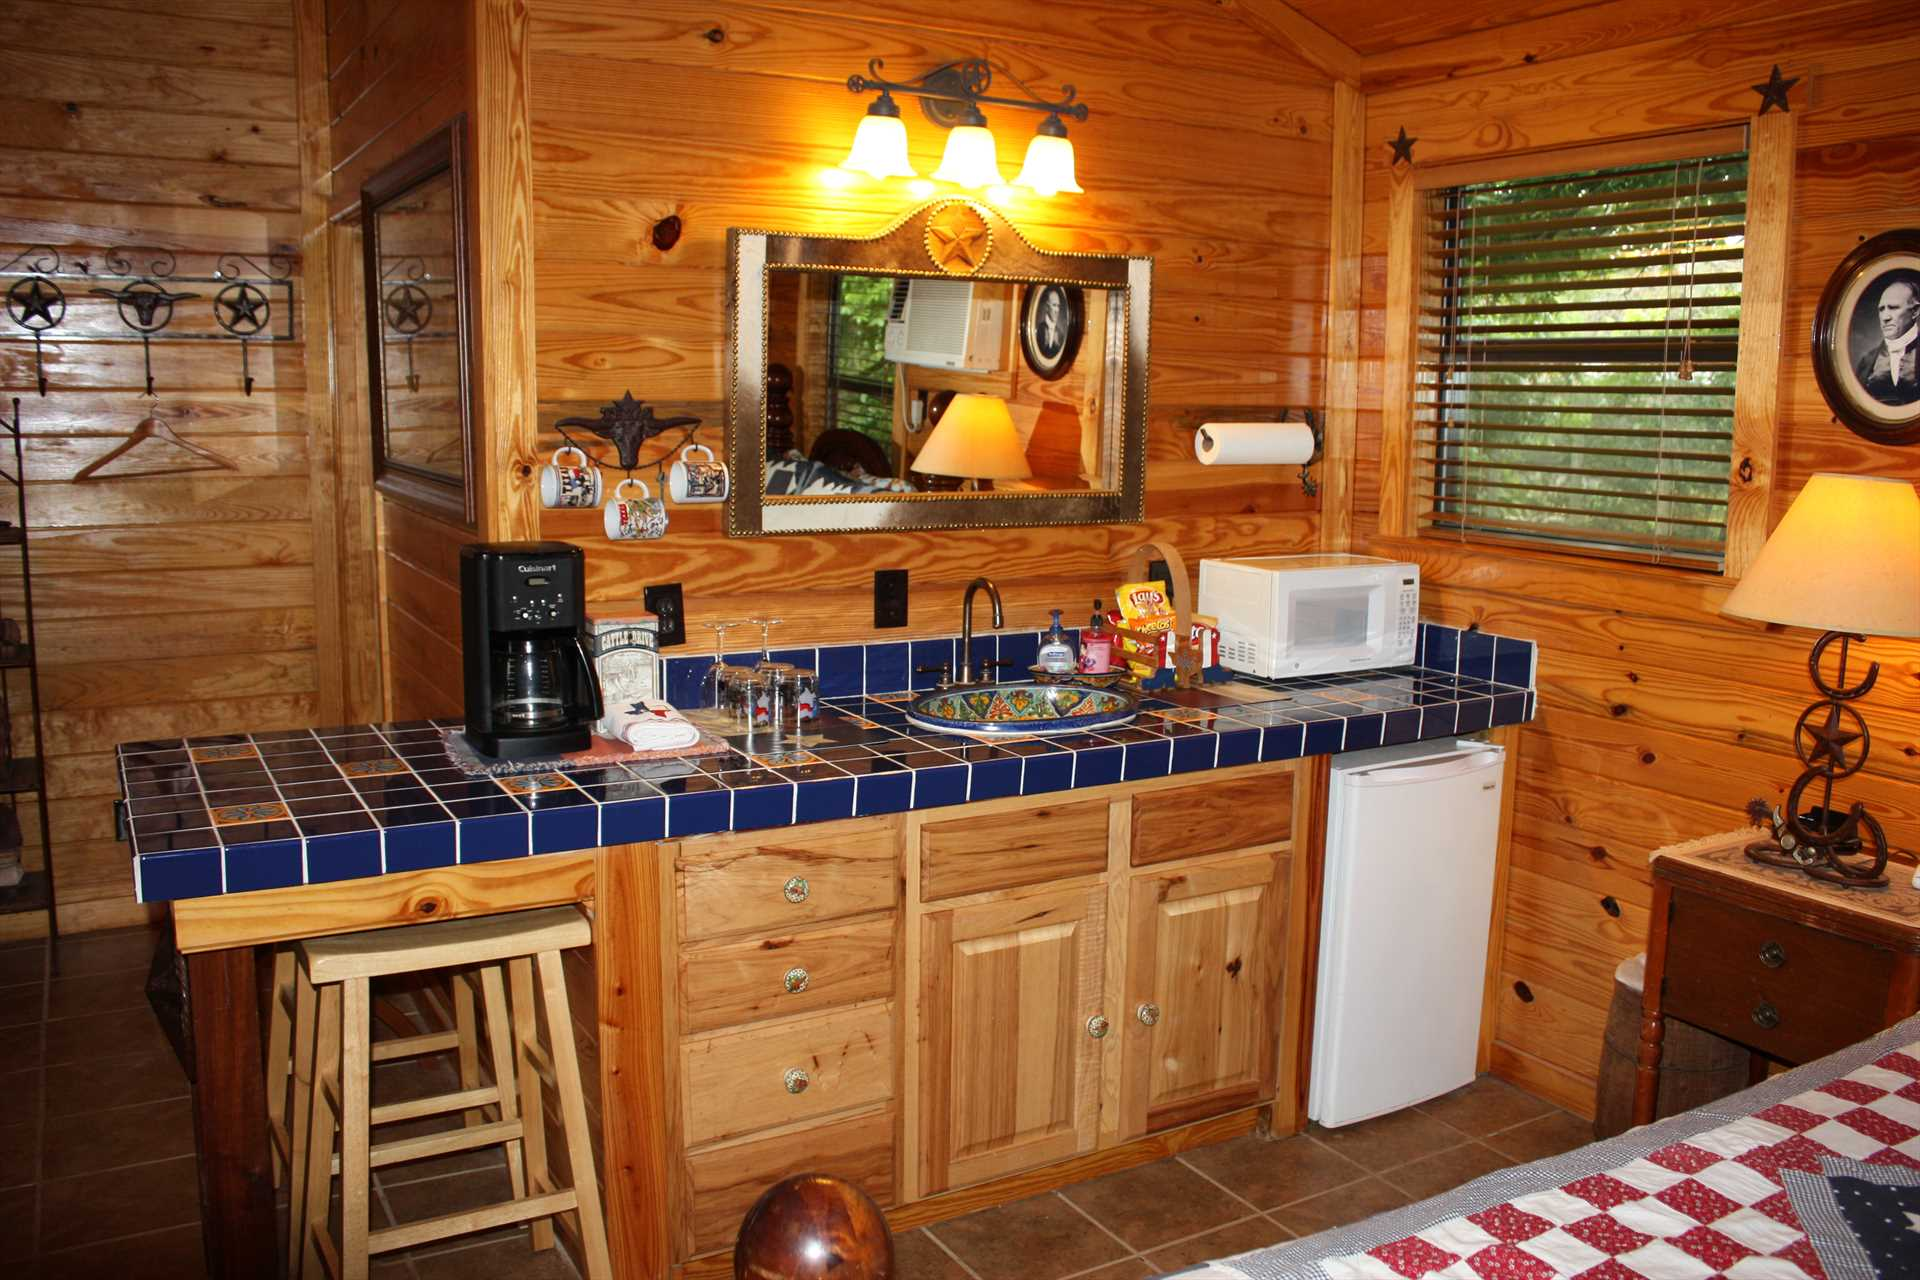 The cozy kitchenette takes care of your basic necessities, complete with complimentary beverages.